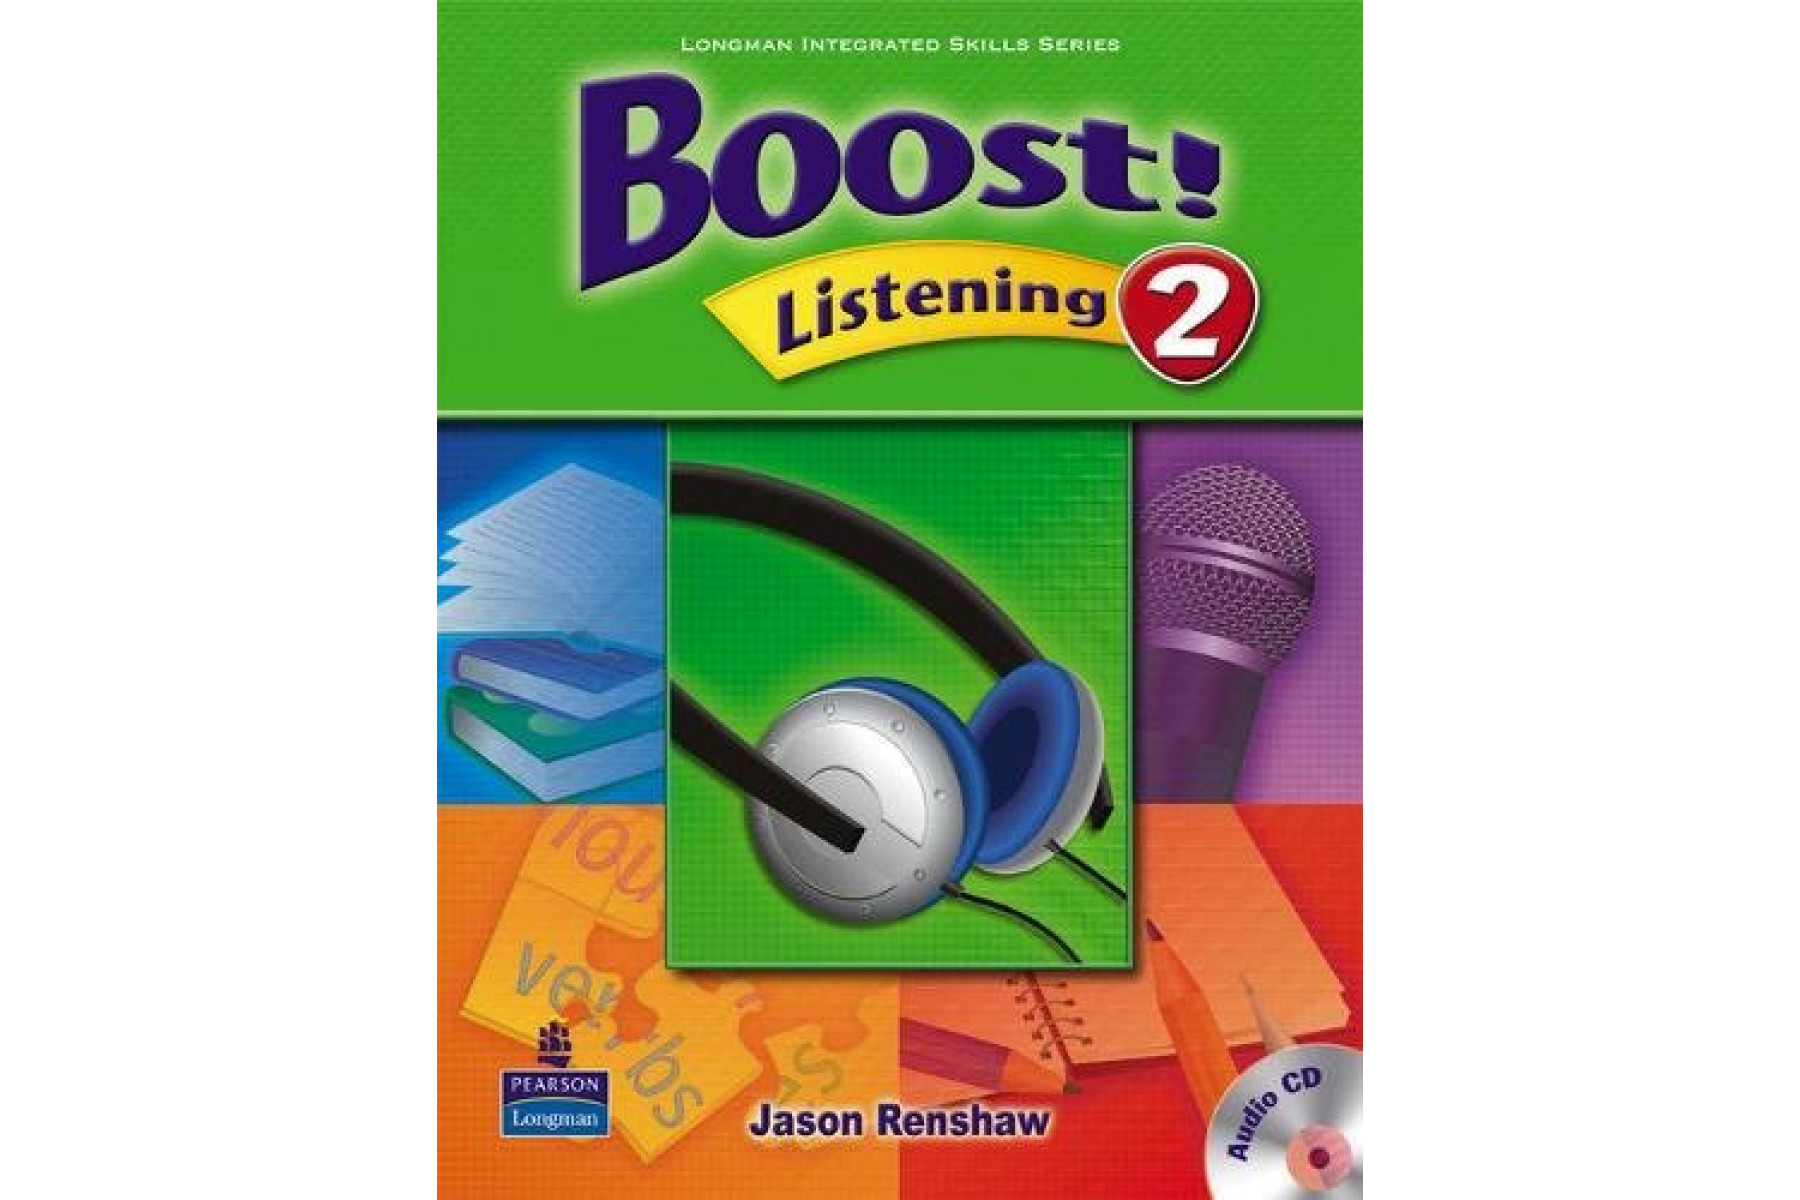 Boost! Listening 2 Student Book with Audio CD